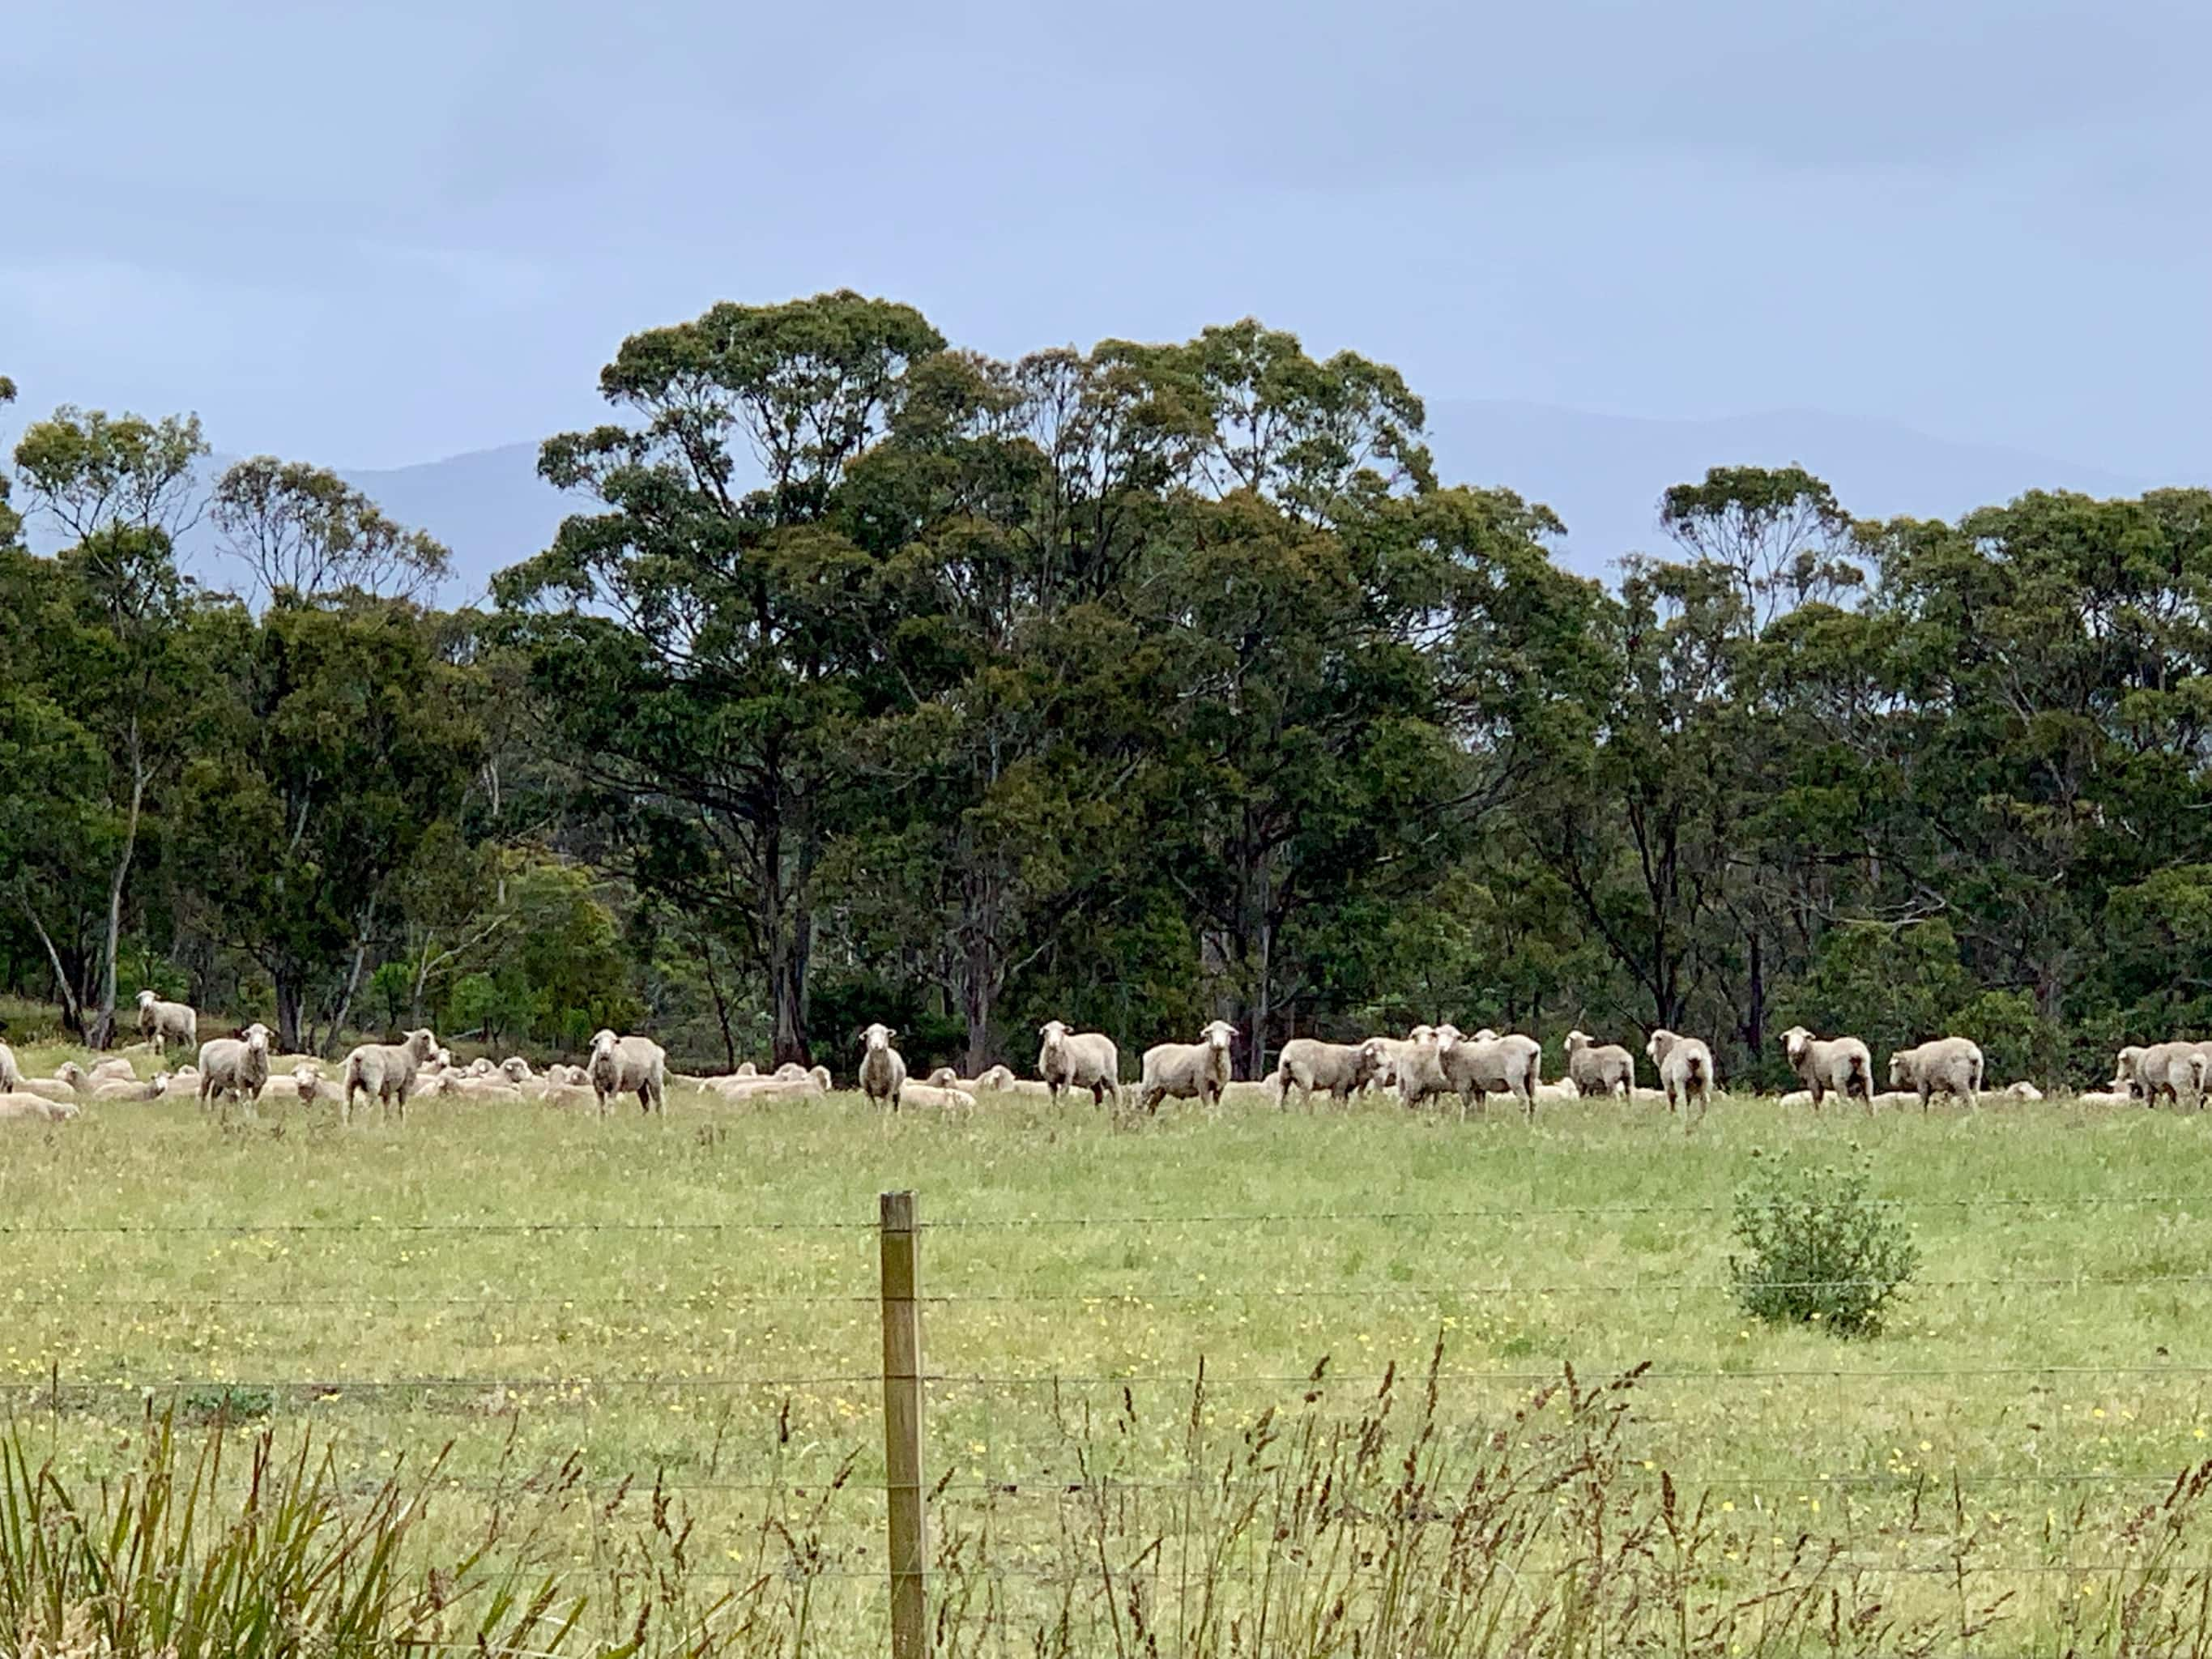 A flock of sheep grazing on North Bruny Island.